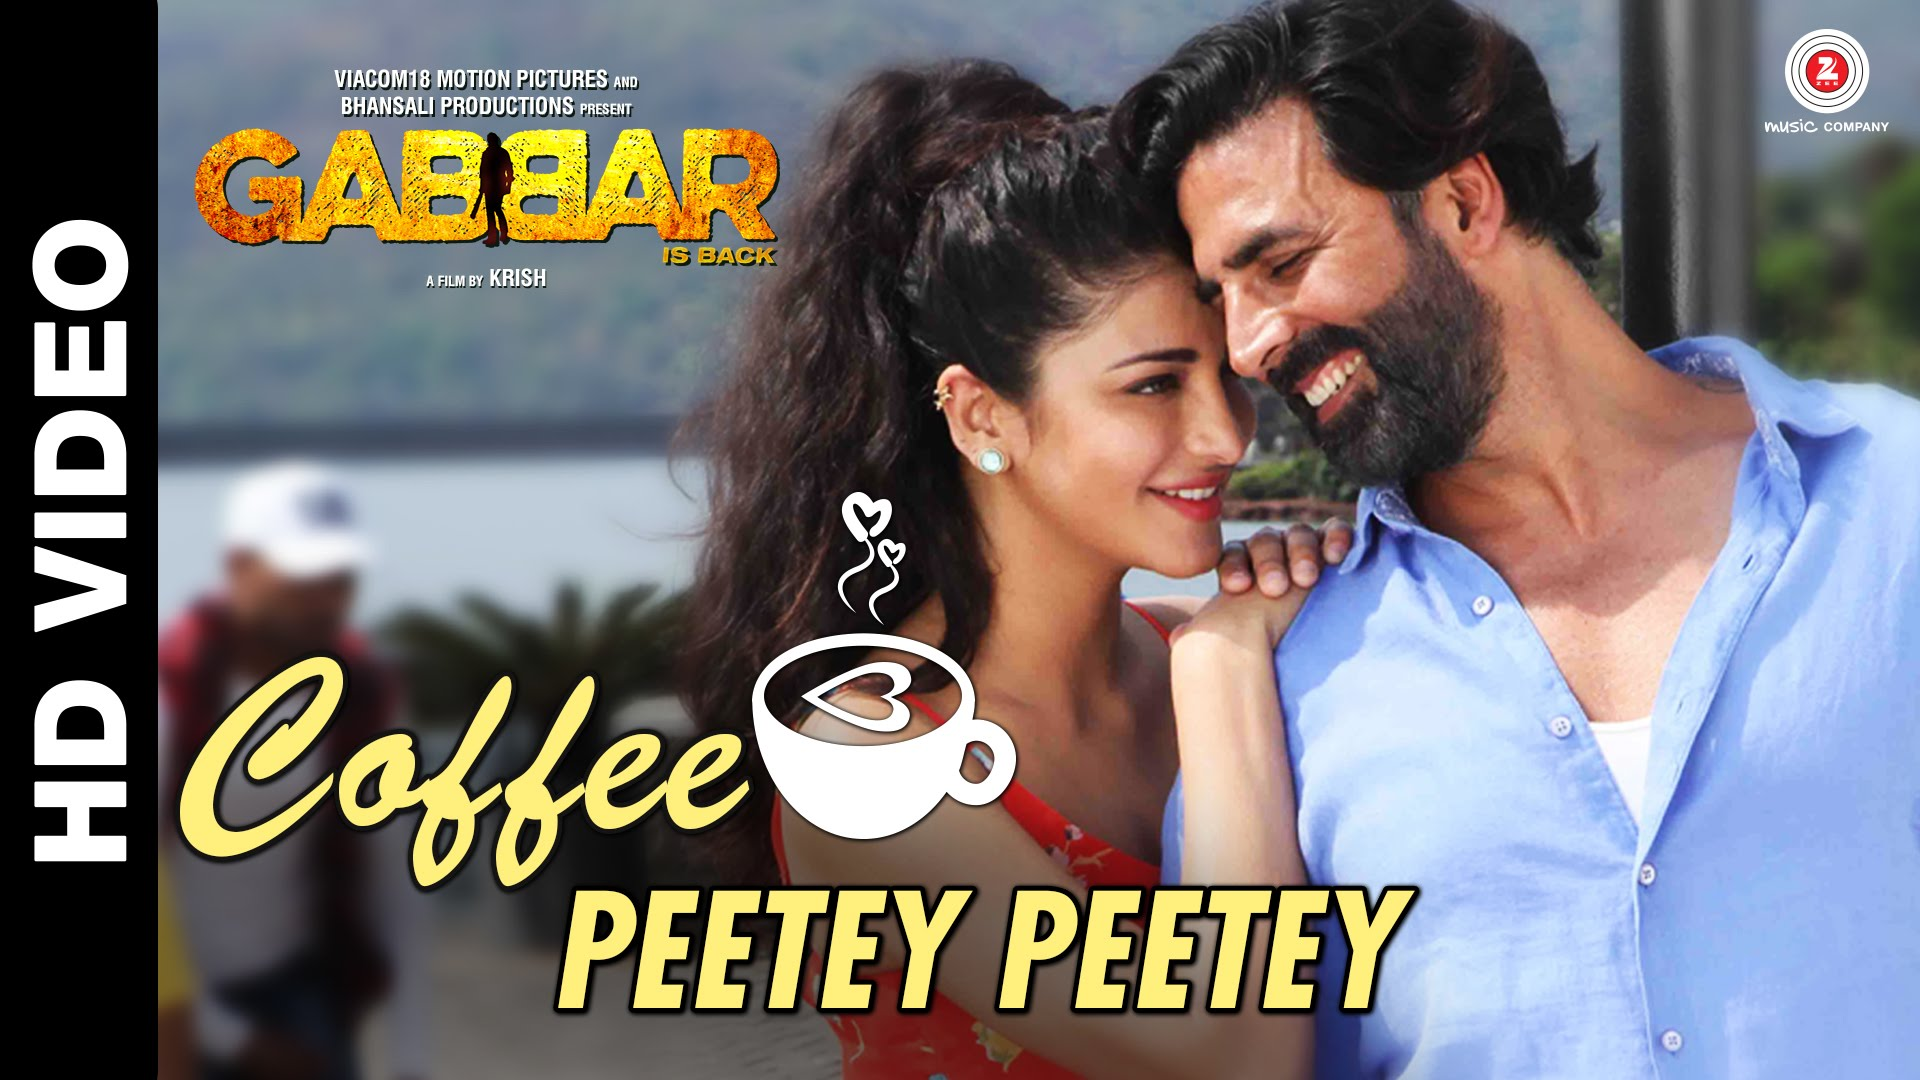 Coffee Peetey Peetey Video Song - Gabbar Is Back | Official Video Song